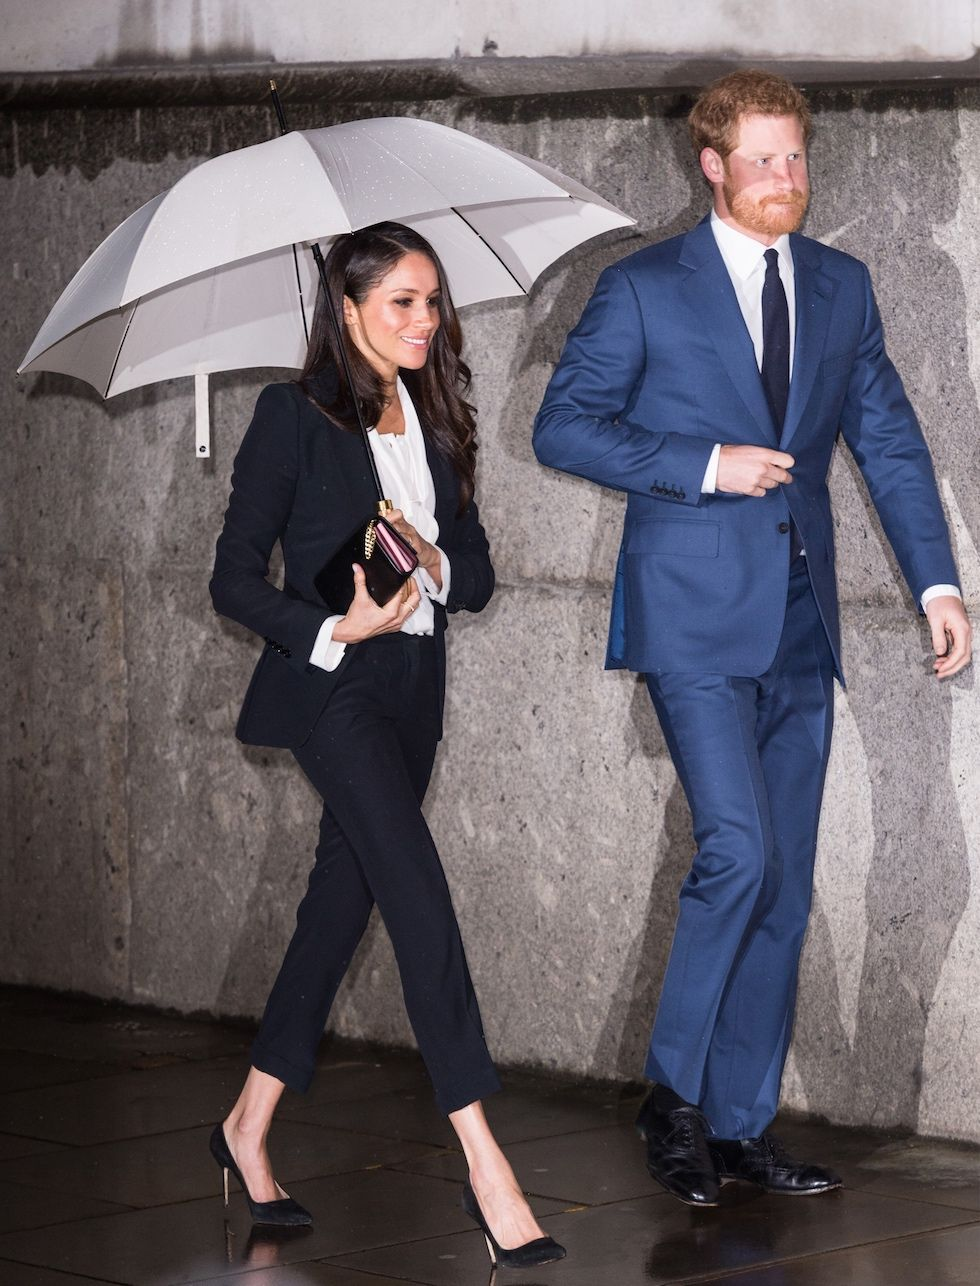 meghan markle wearing alexander mcqueen suit get her smart business outfit with similar items work suits for women work outfits women business women fashion meghan markle wearing alexander mcqueen